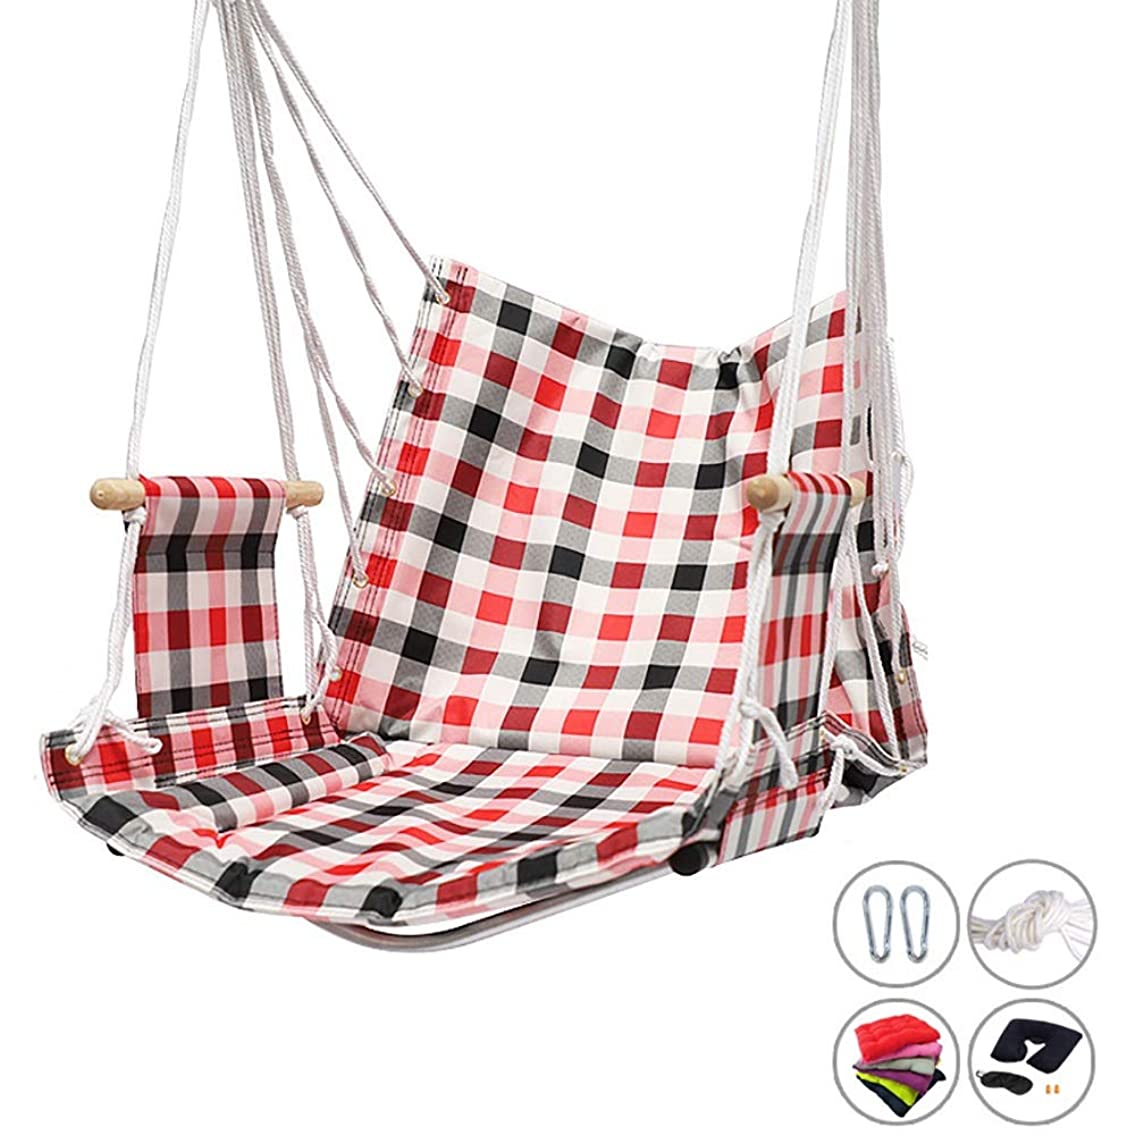 YXX- Hanging Rope Chair Swing Seat, Handmade Hammock Chair with 2 Hooks for Home Patio Deck Yard Garden Reading Leisure (Color : Style-1)